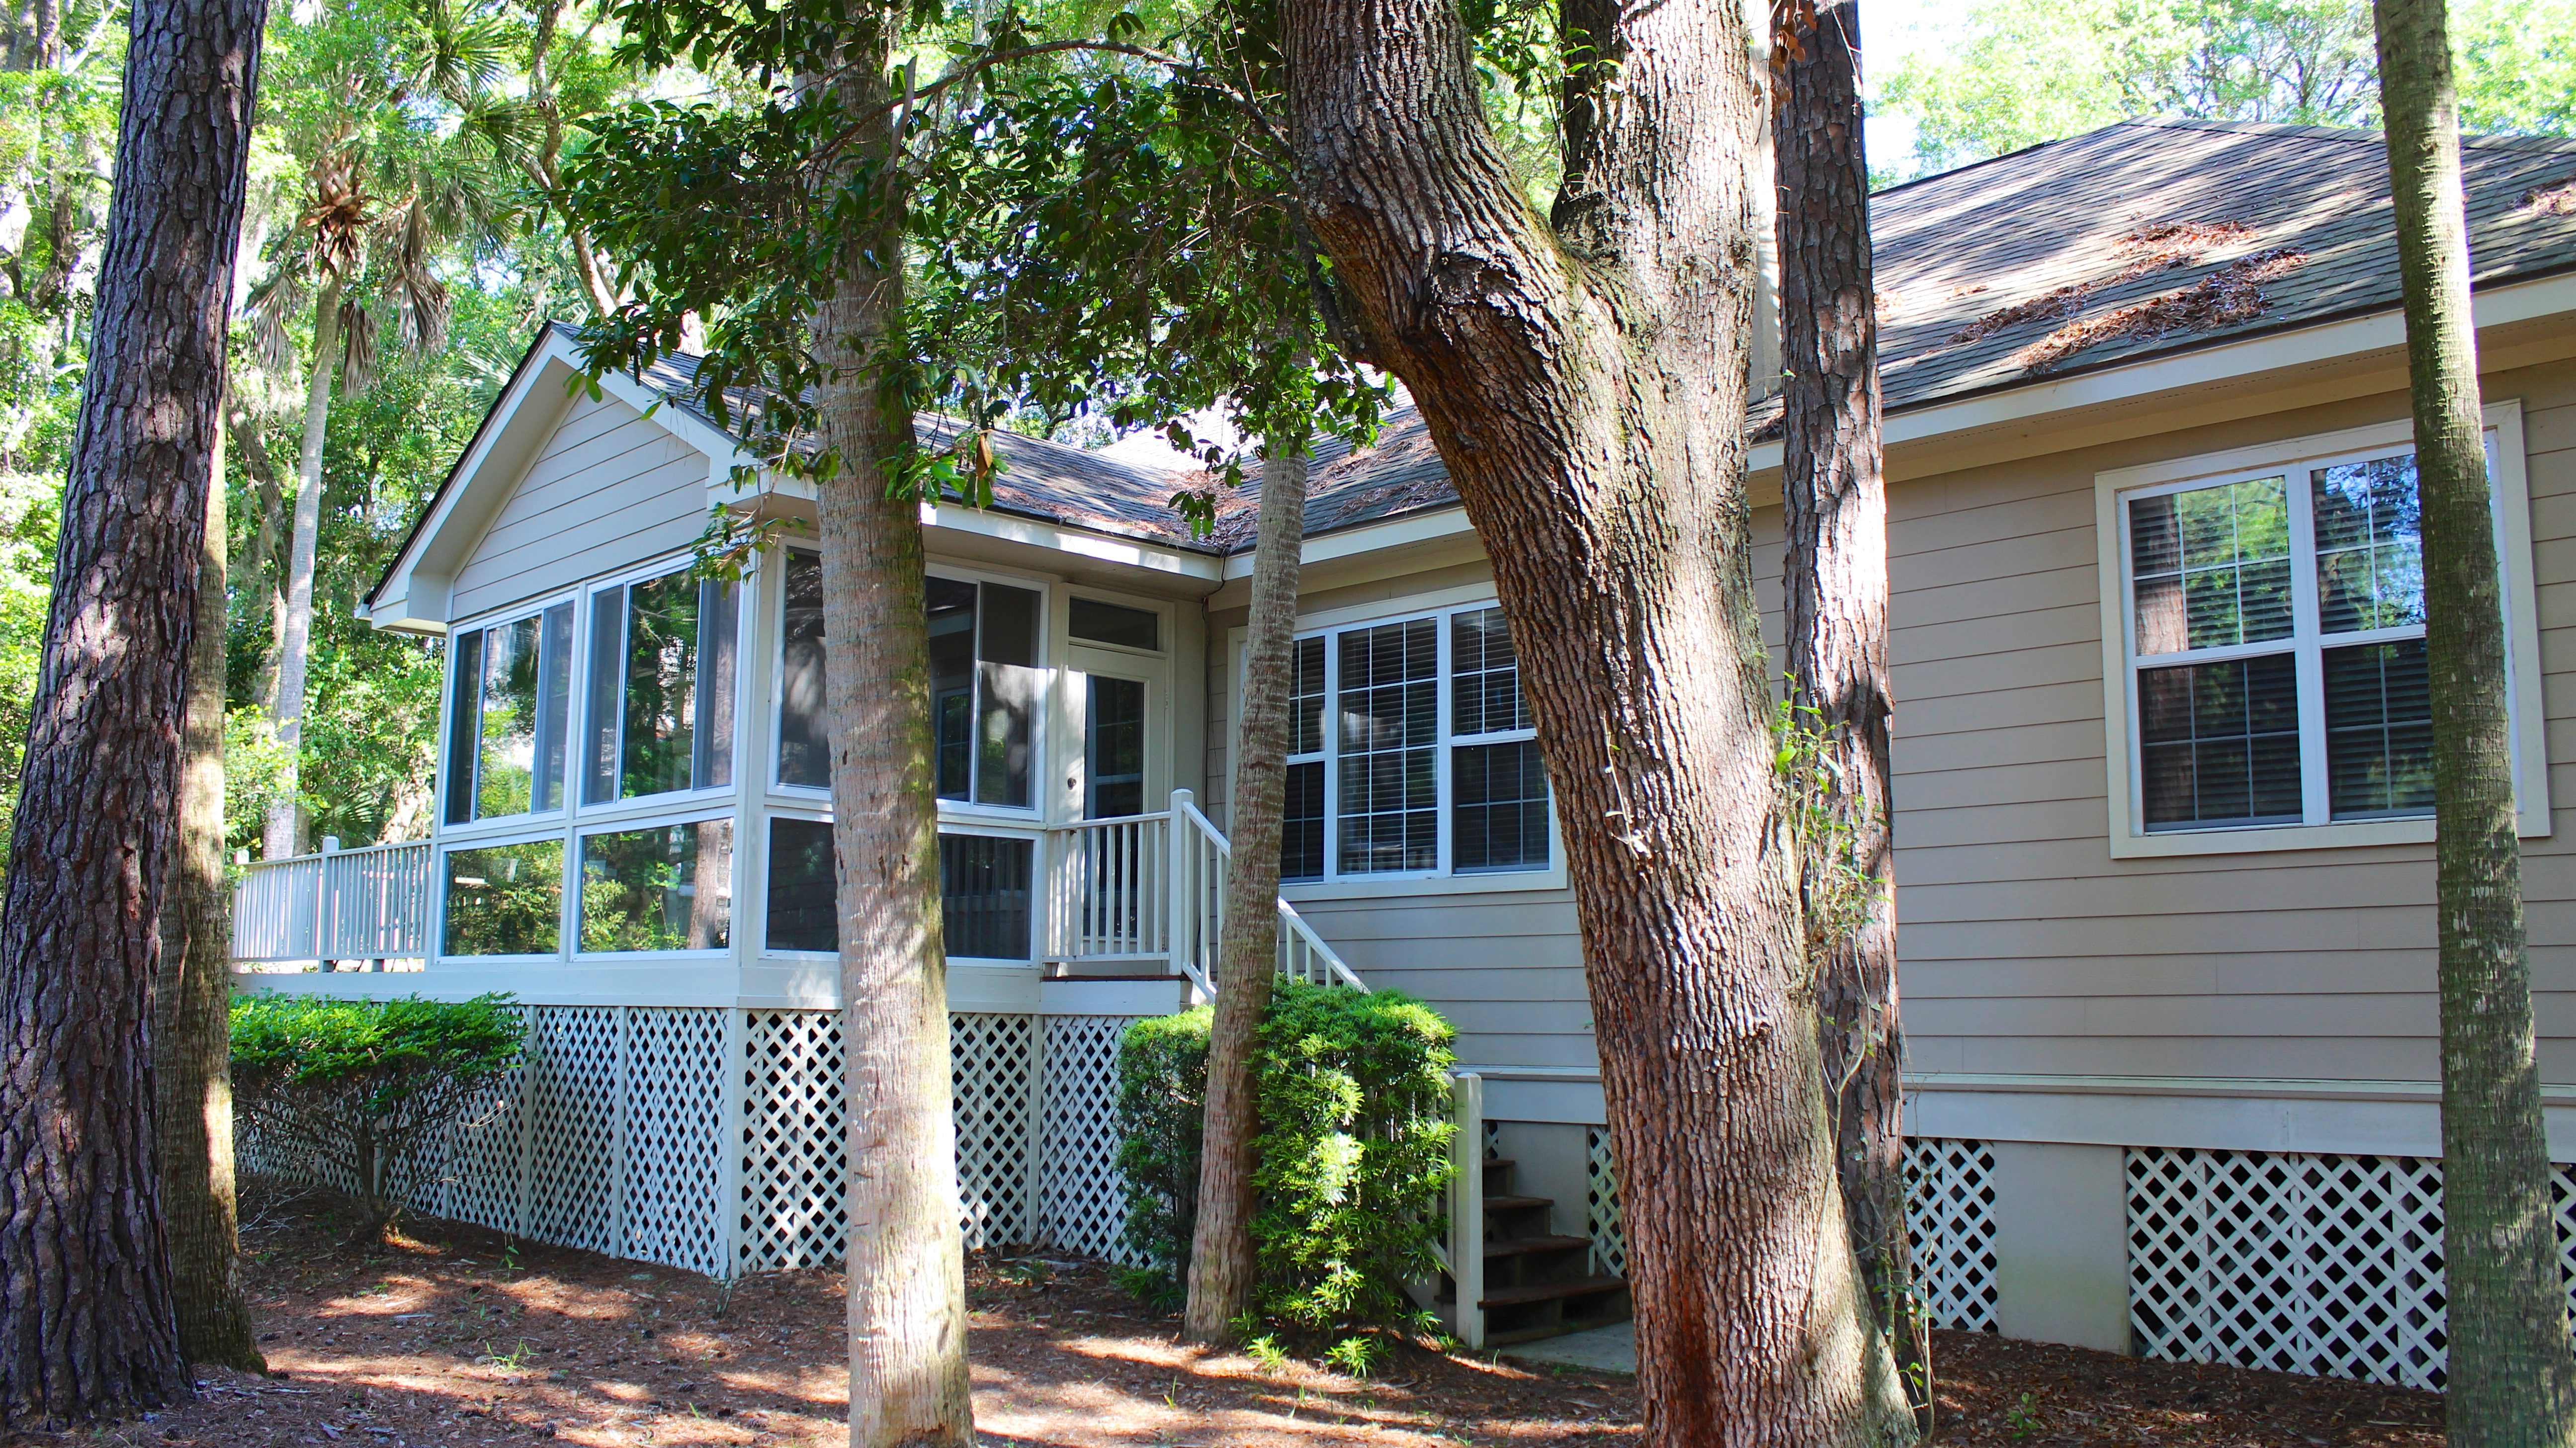 This home is perfect for families ready to enjoy Seabrook at its best.